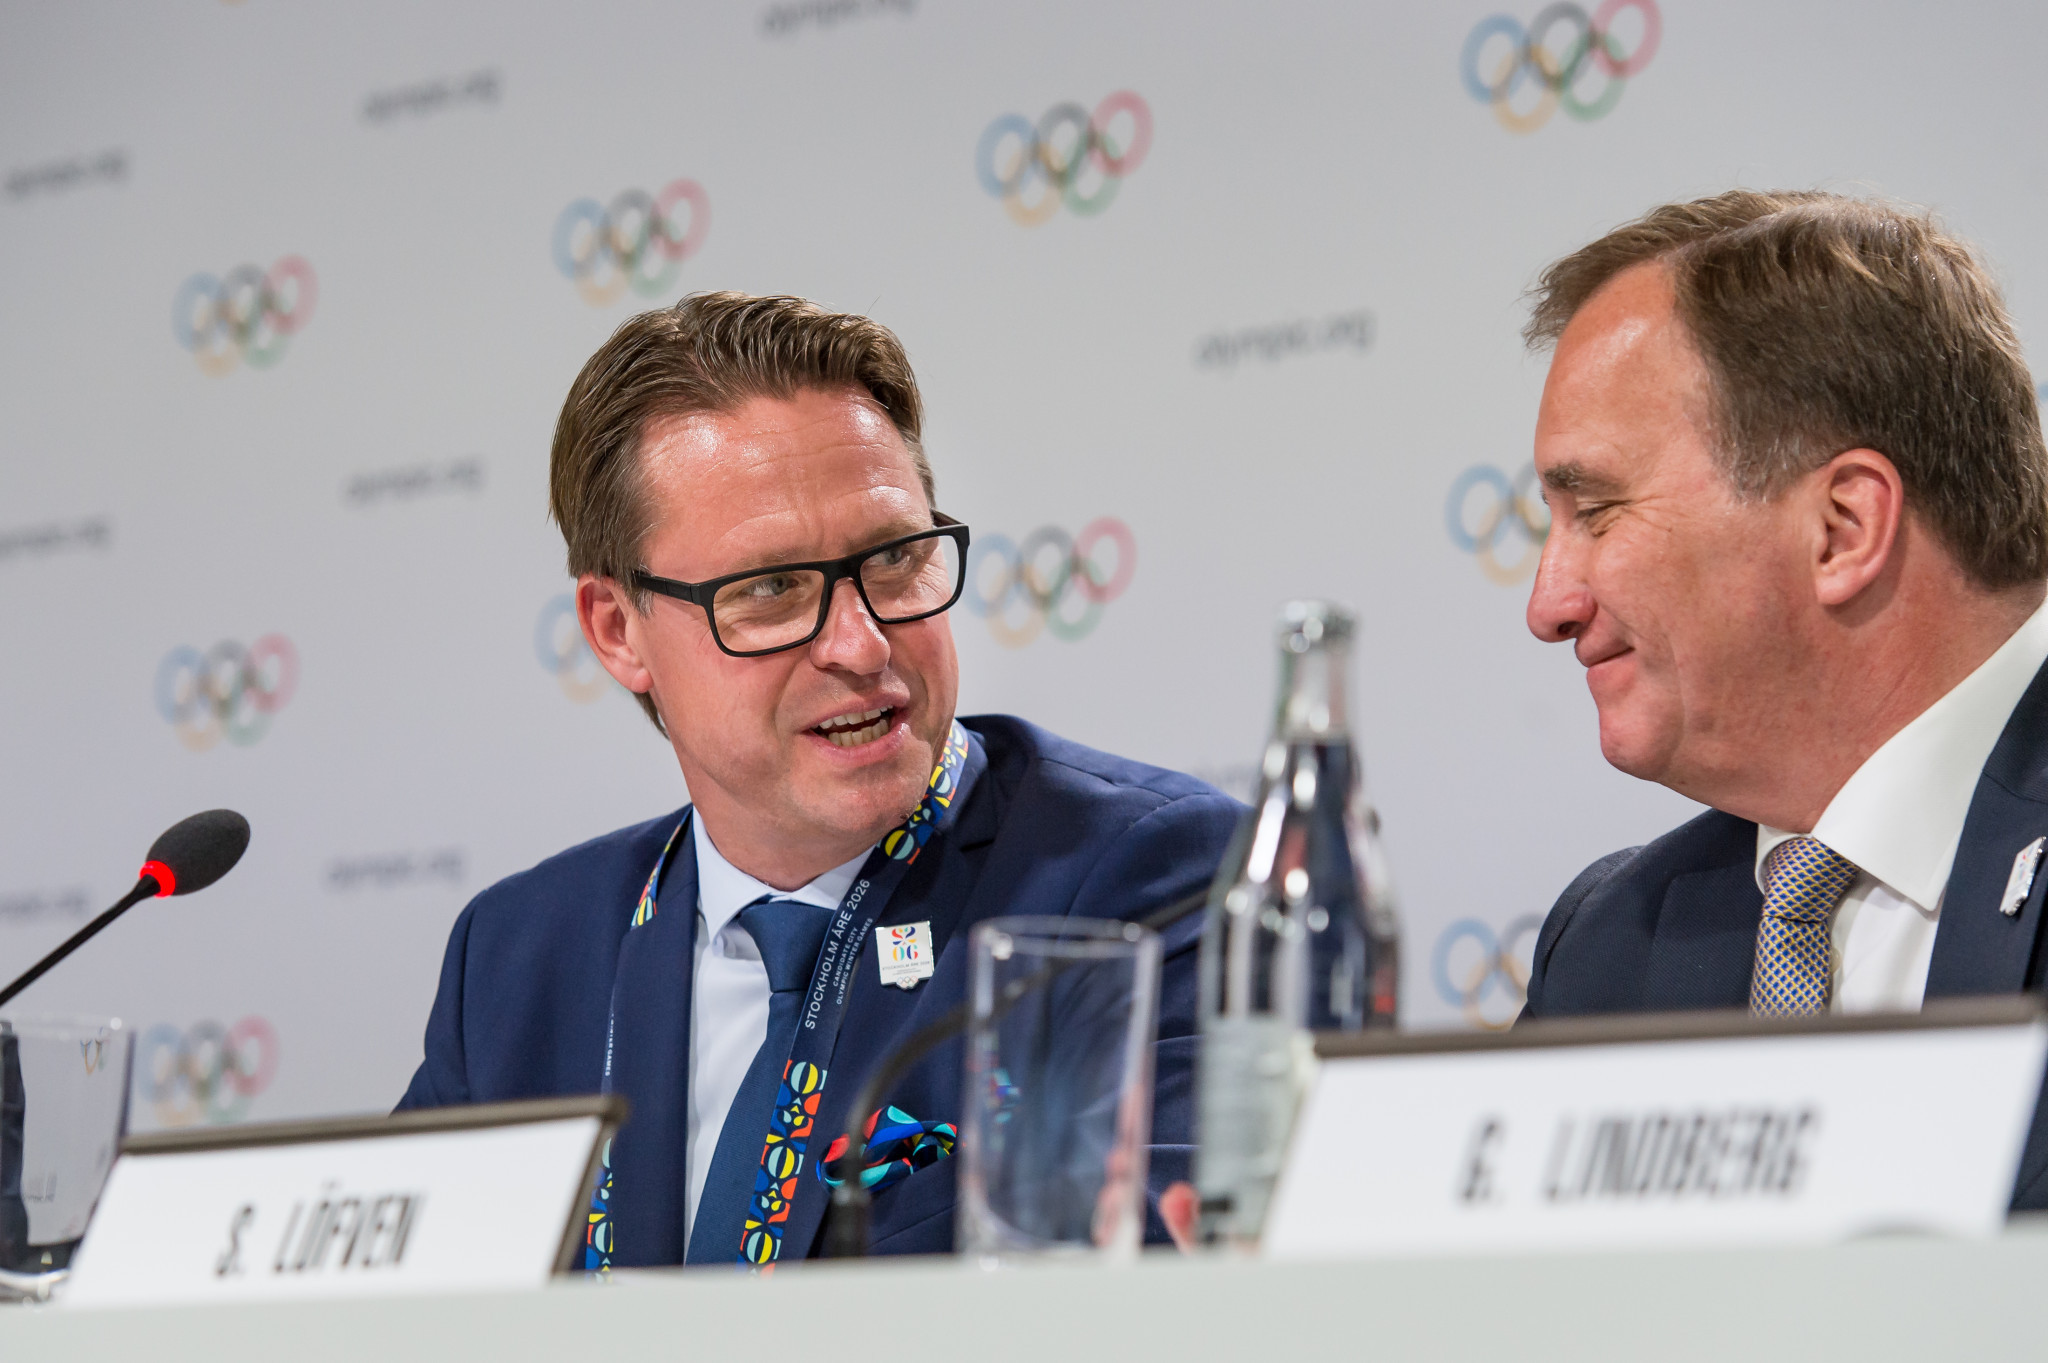 FIS vice-president Mats Årjes believes the organisation can improve across the board ©Getty Images